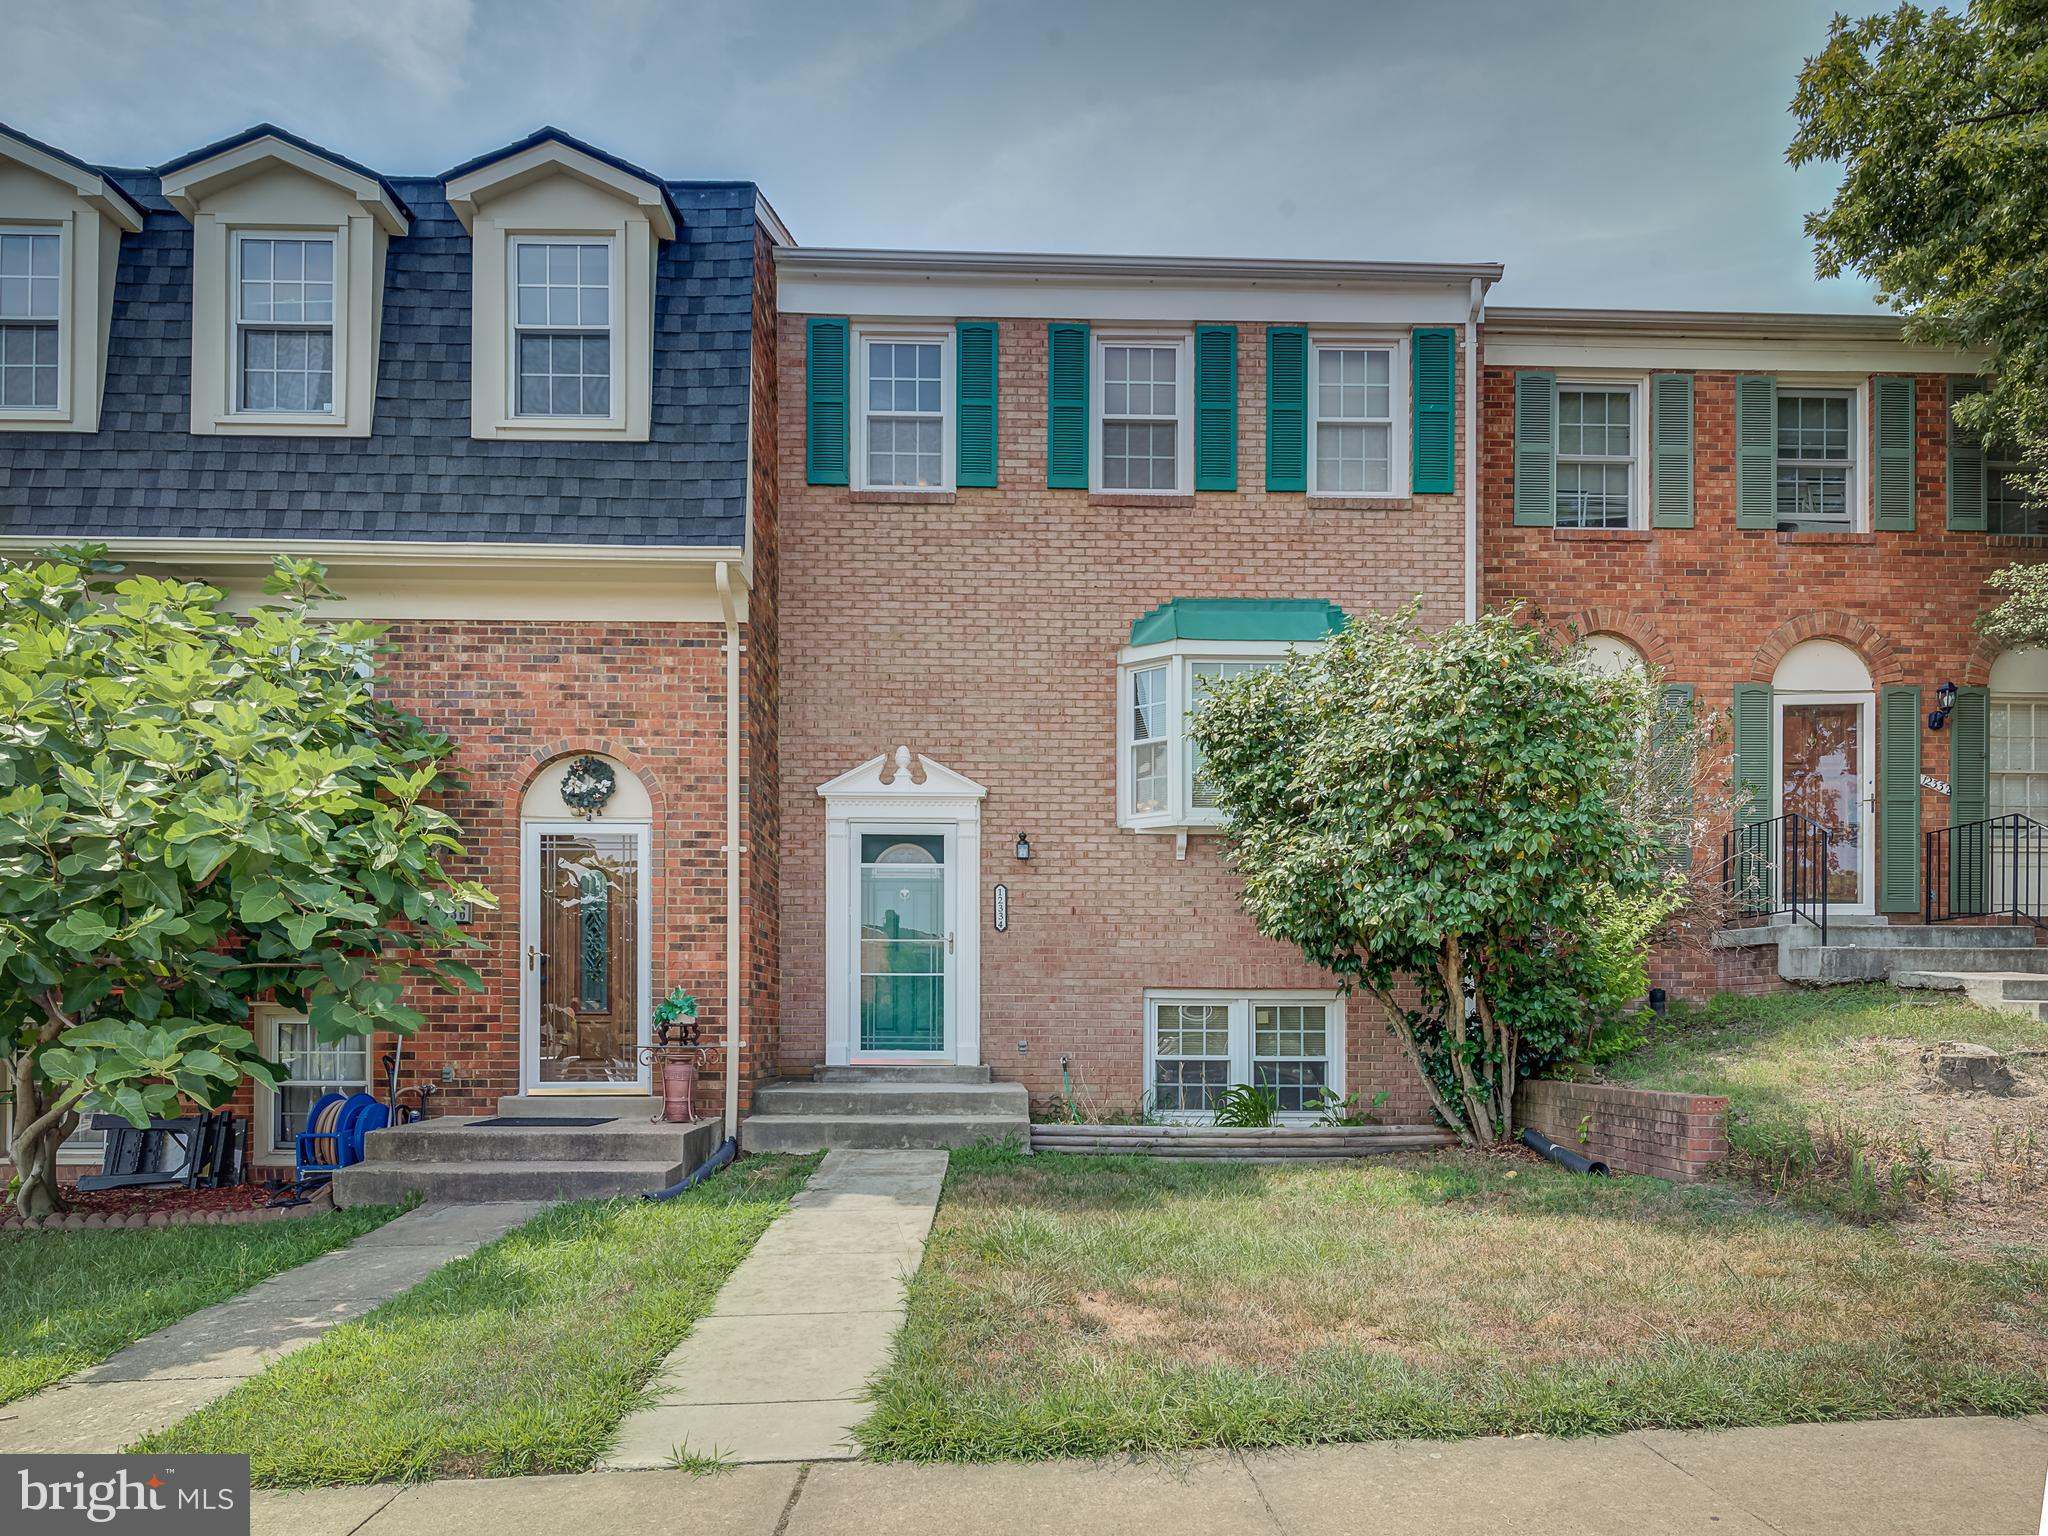 WELL MAINTAINED 3 LEVEL BRICK FRONT TOWNHOUSE IN EXCELLENT CONDITION. NEW ROOF AND GUTTERS (2016), K